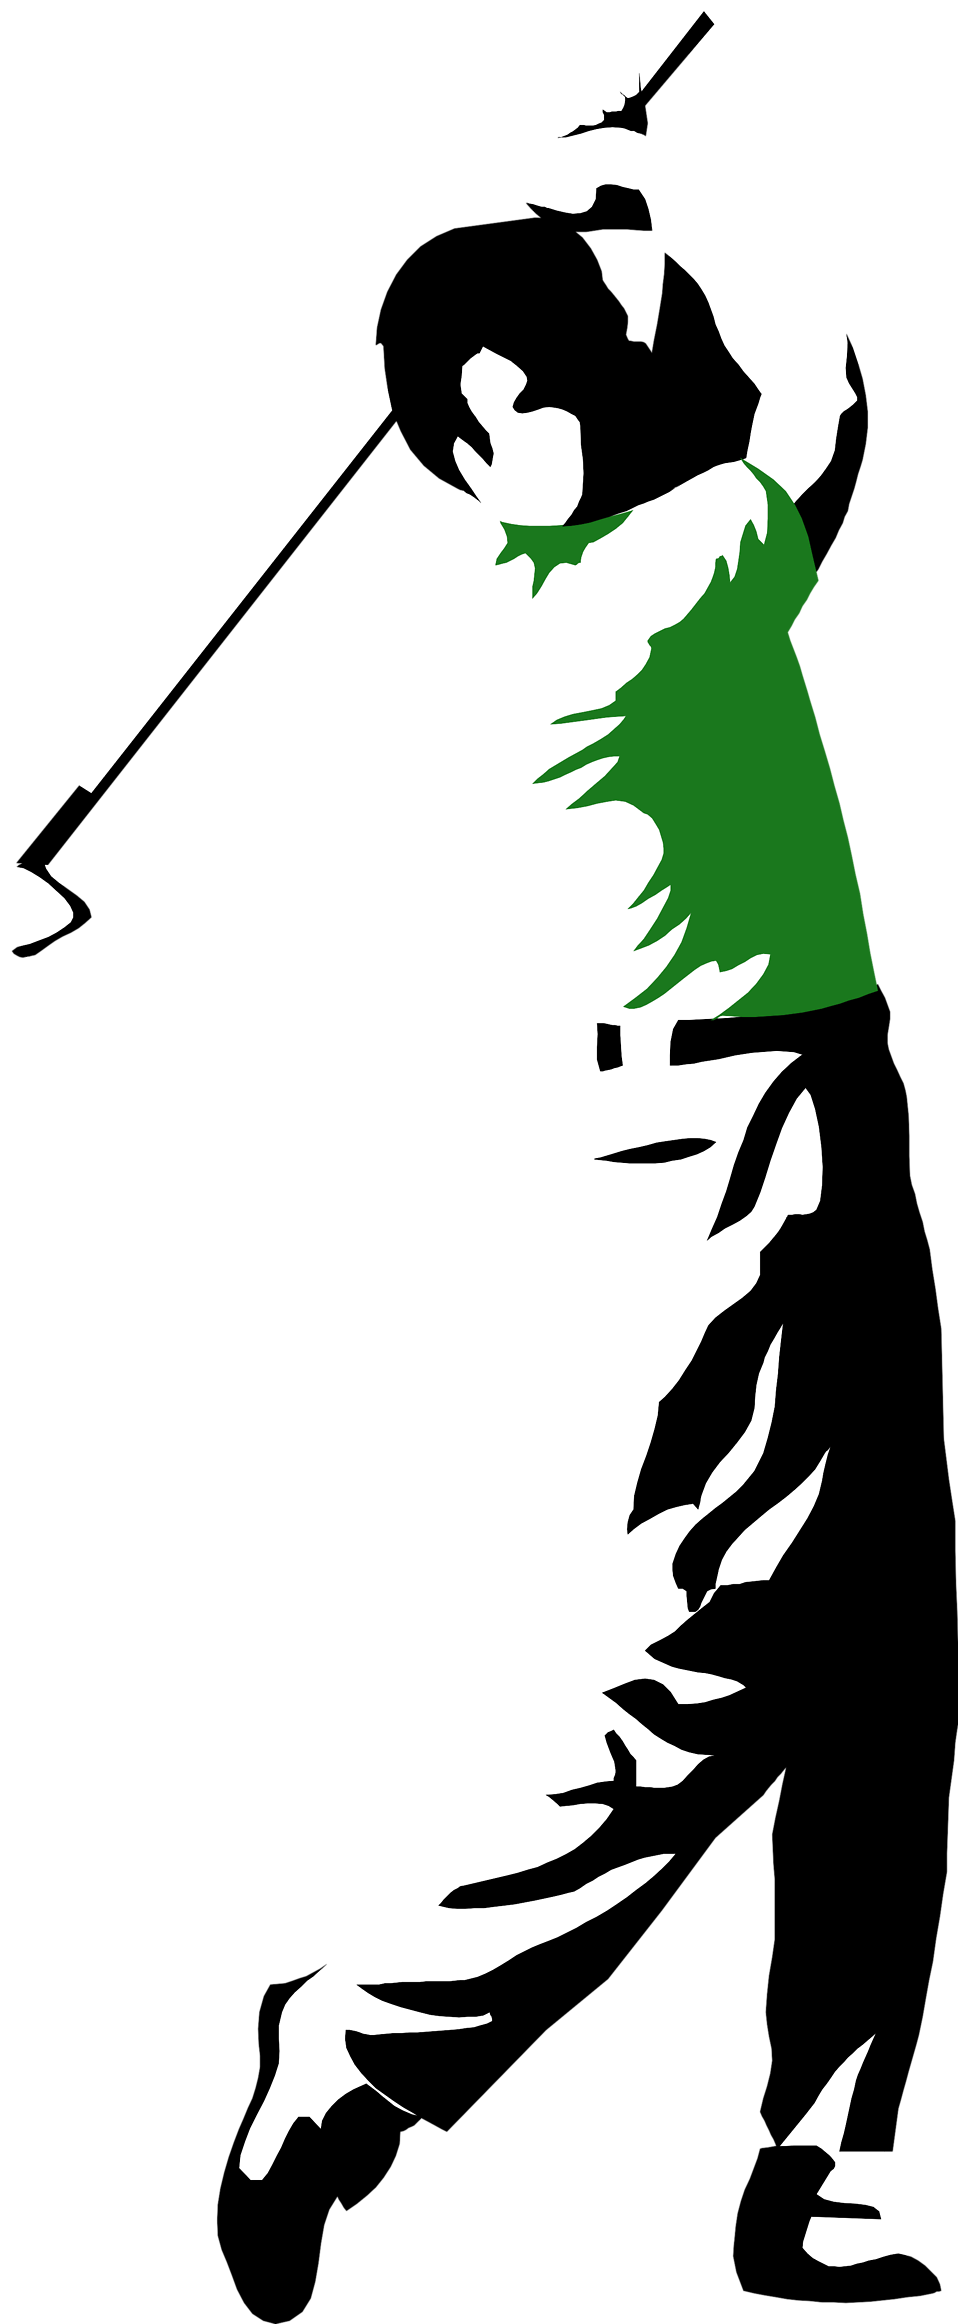 Photograph clipart photography club. Golf free stock photo